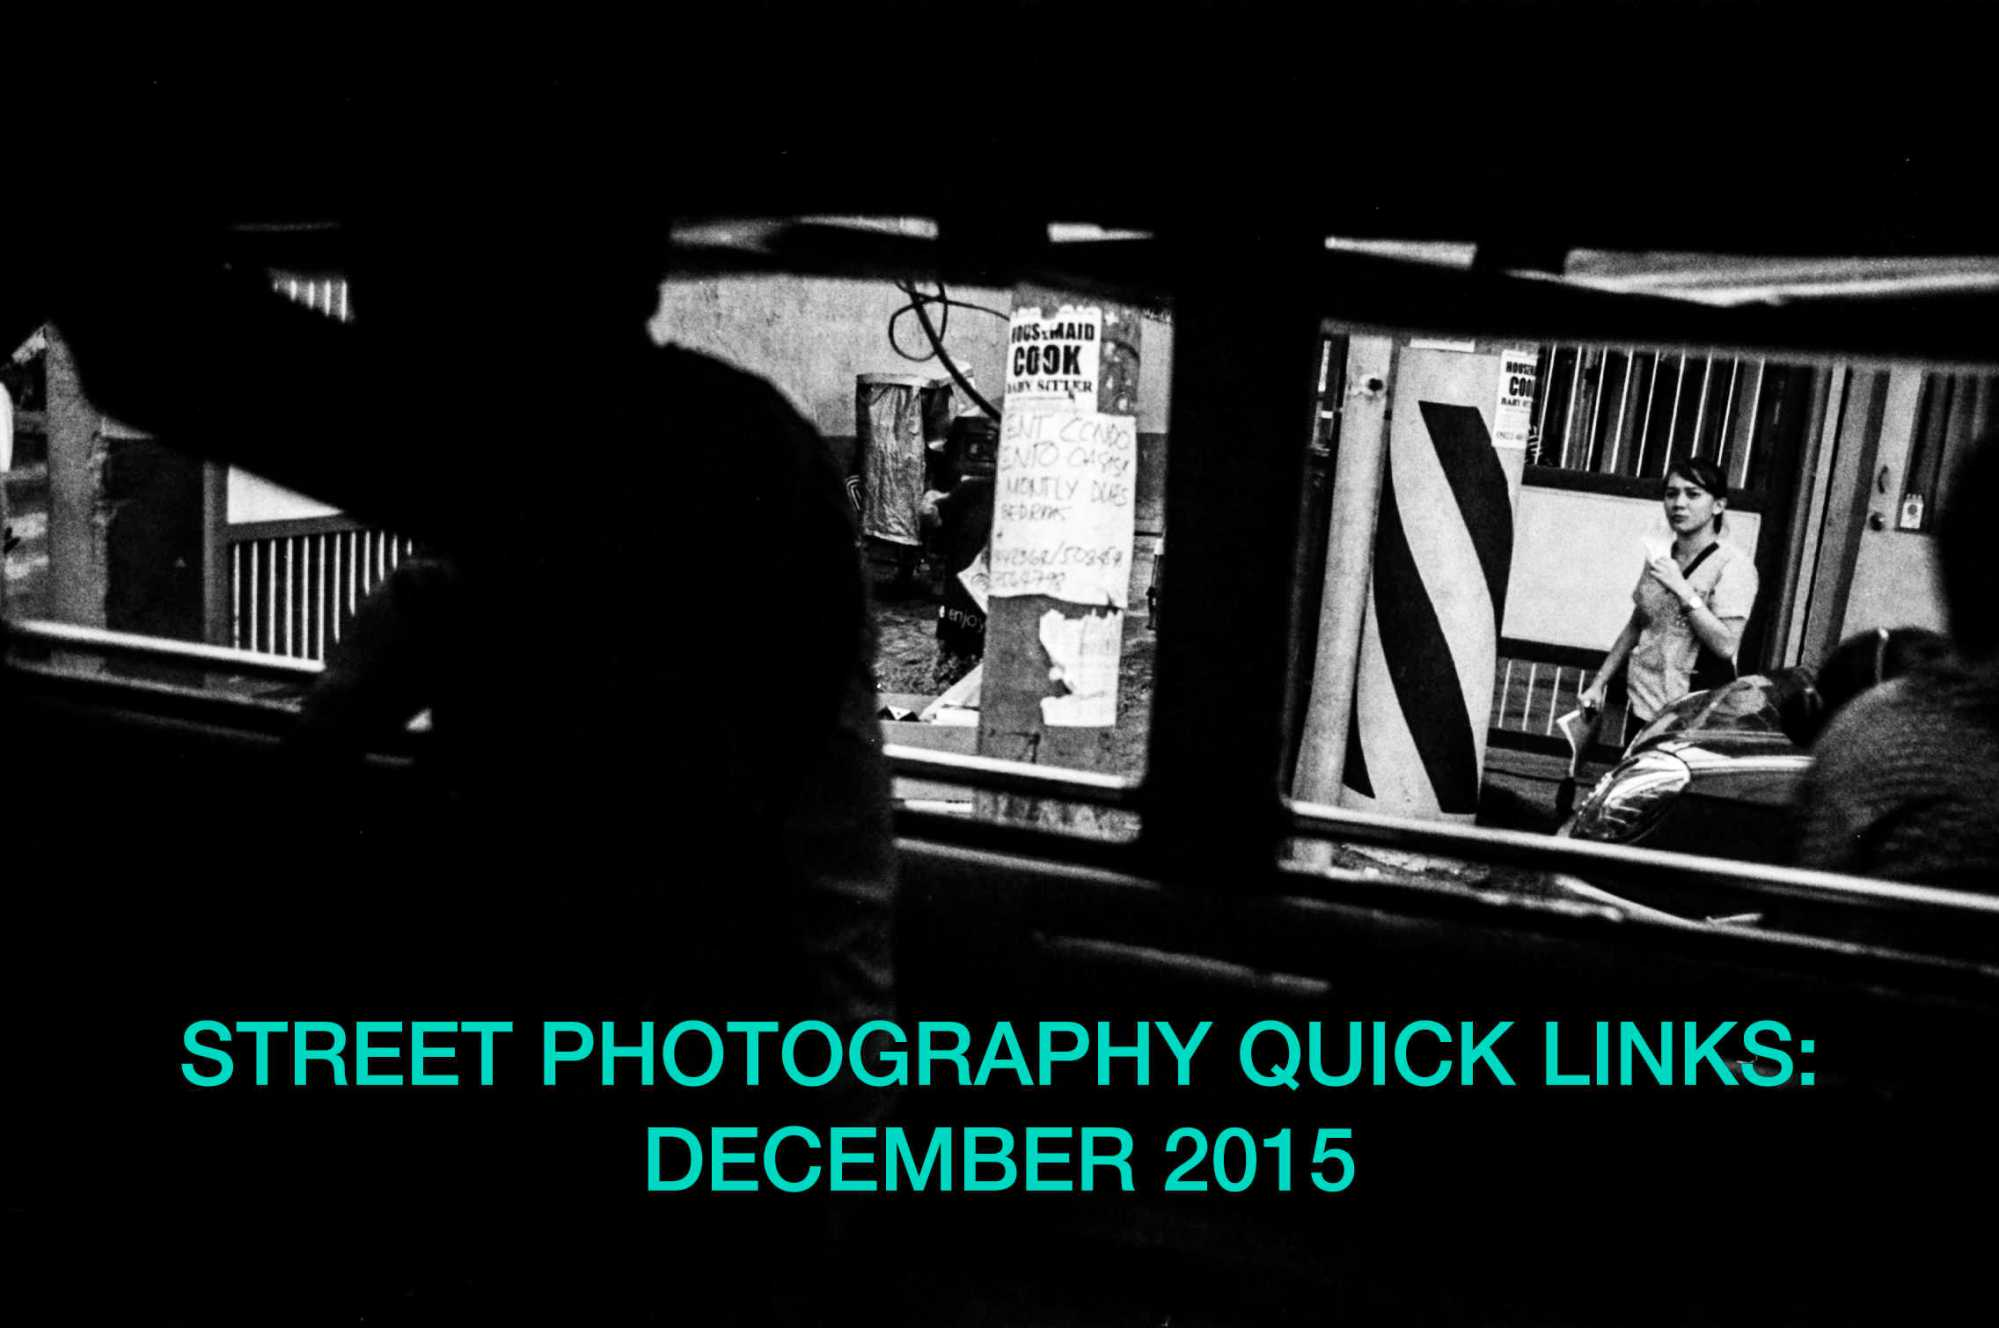 Street Photography Quick Links: December 2015